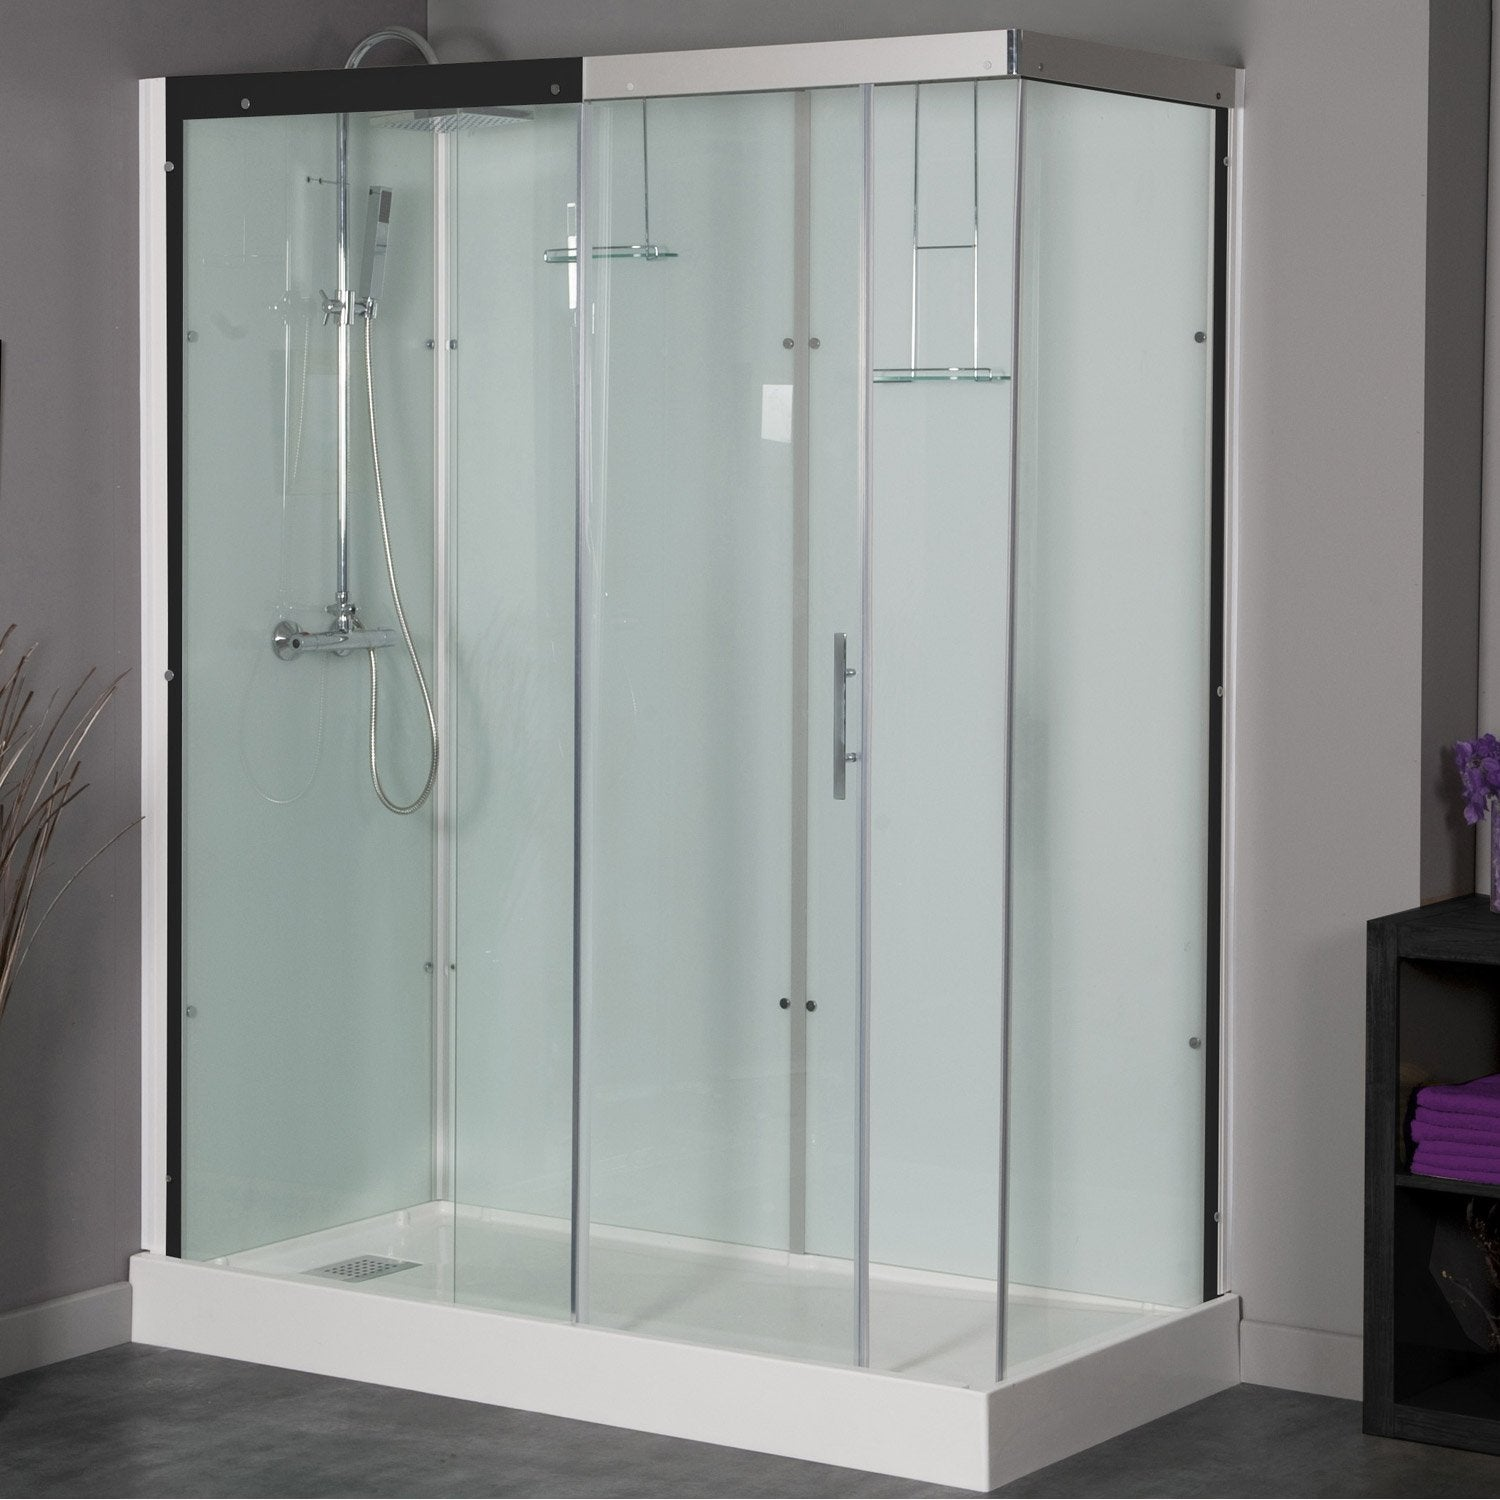 Cabine de douche rectangulaire 160x80 cm, Thalaglass 2 thermo ...